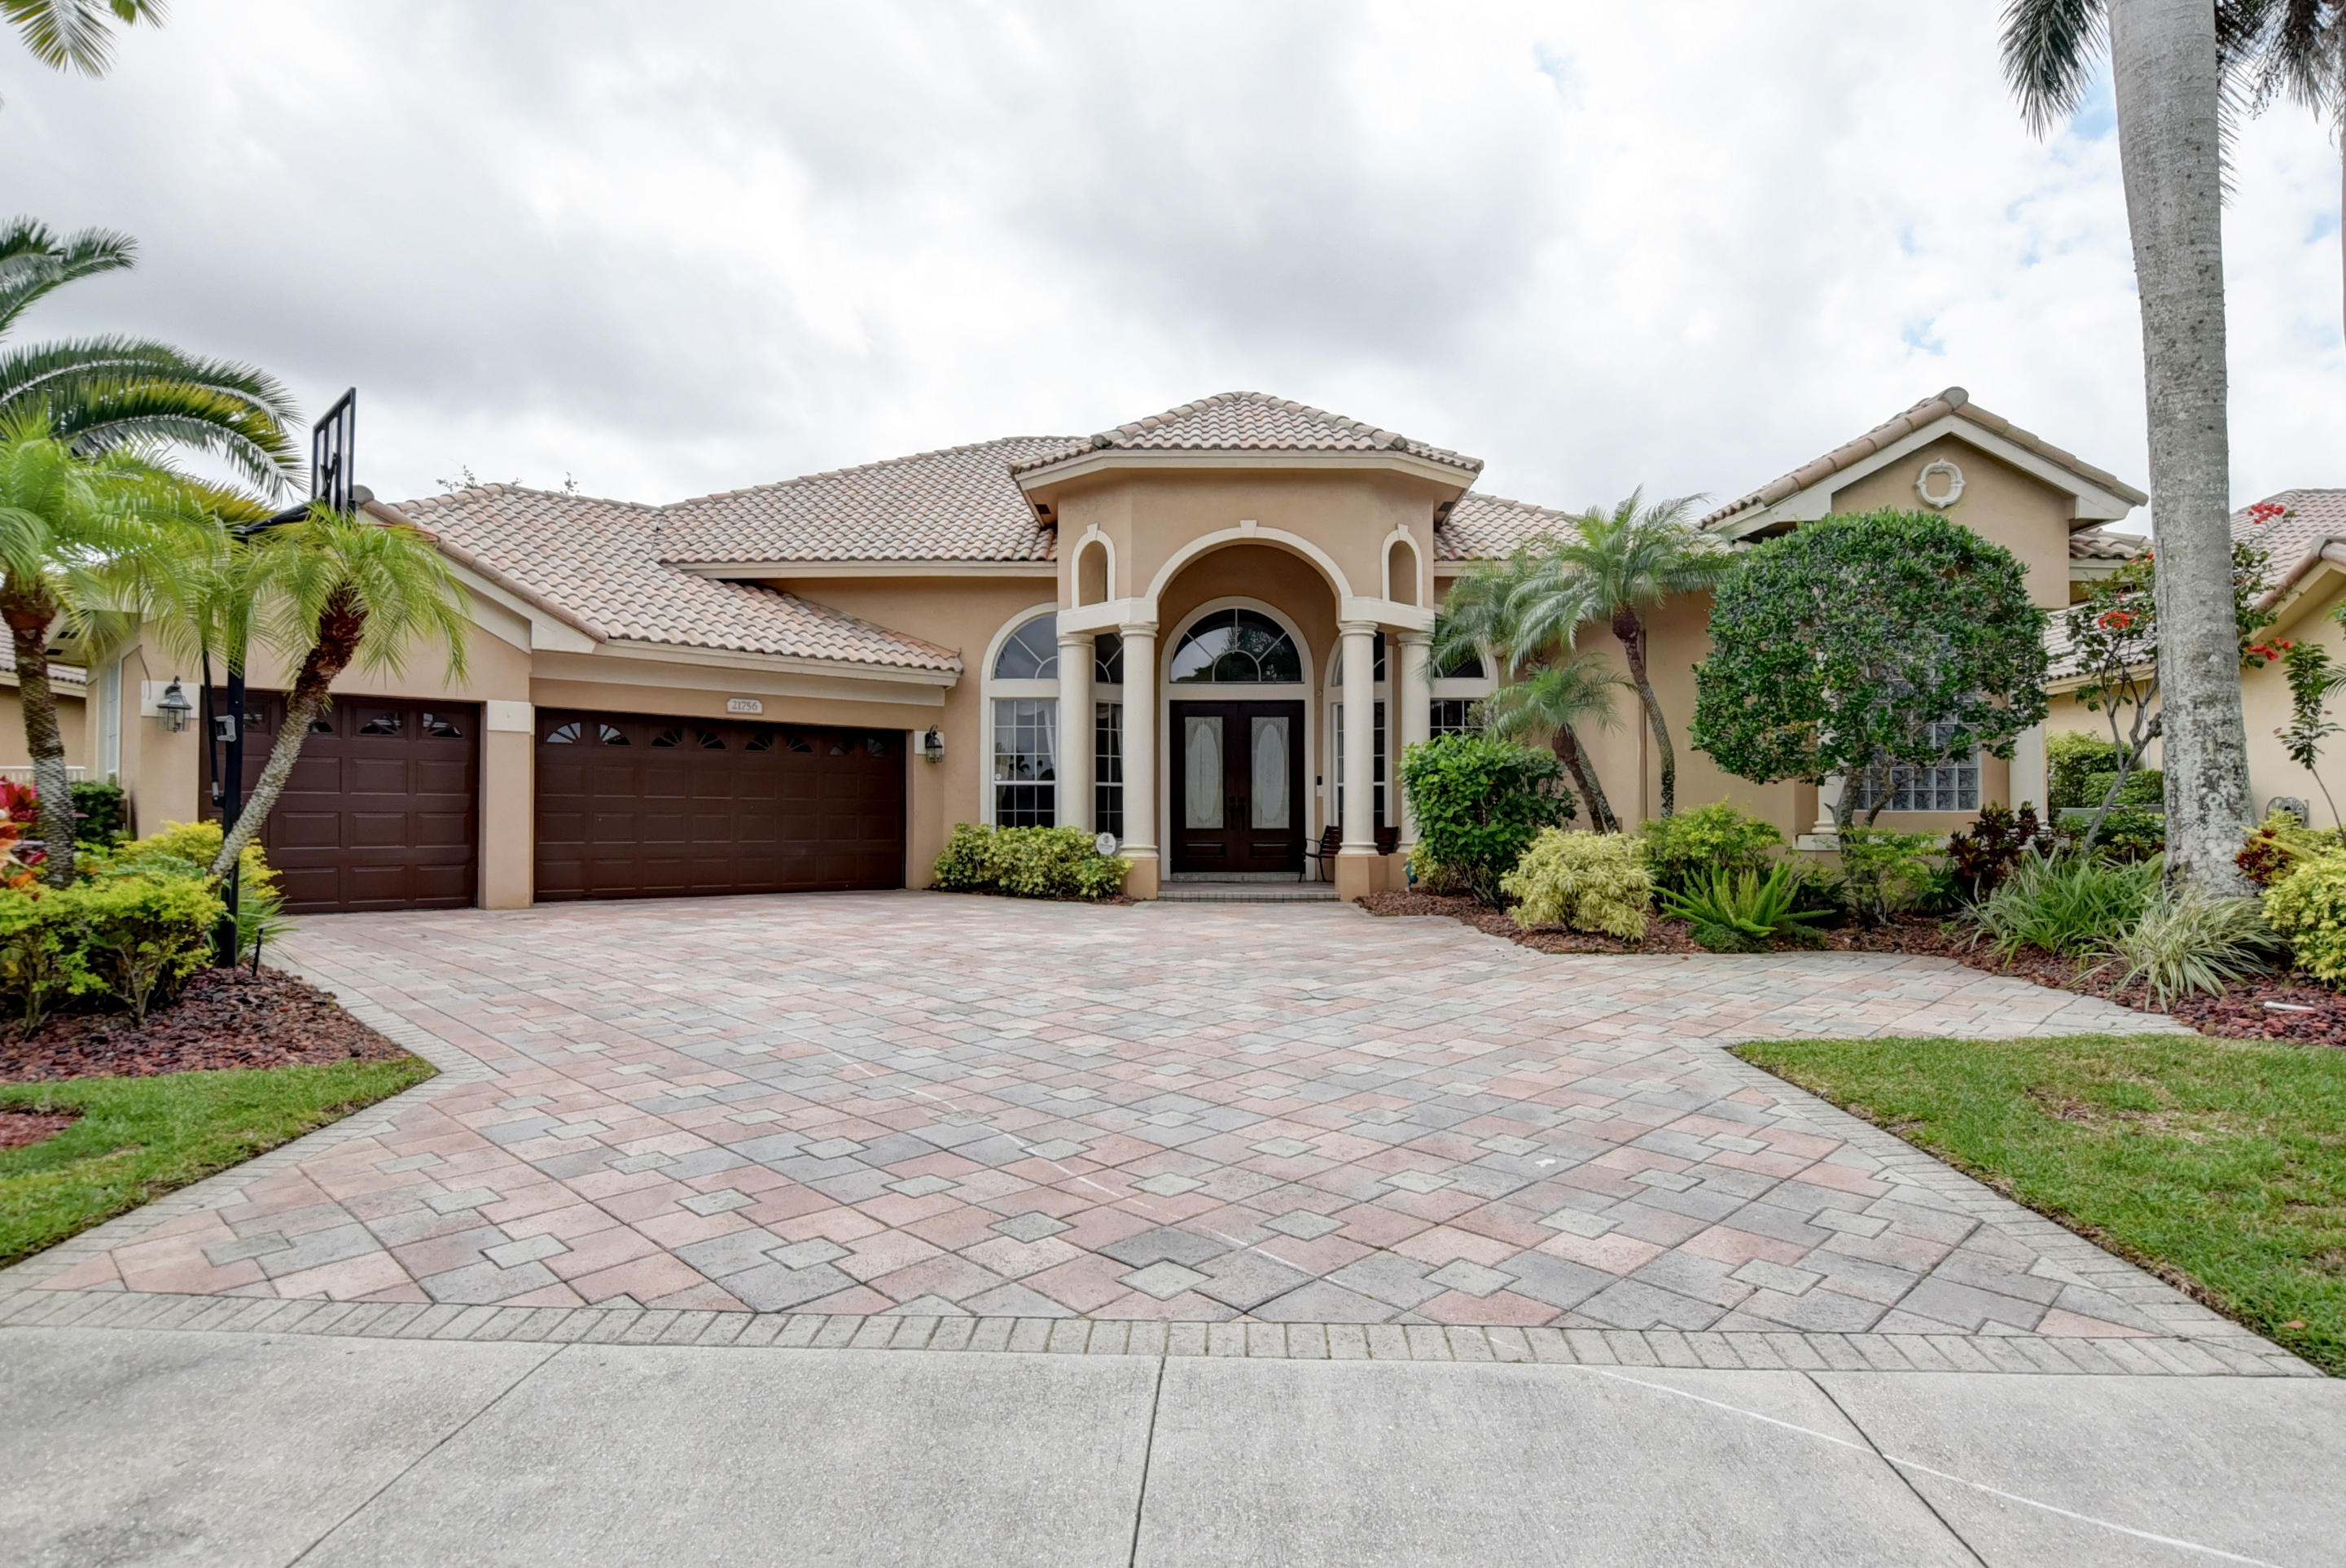 Home for sale in Boca Falls / Crystal Point Boca Raton Florida